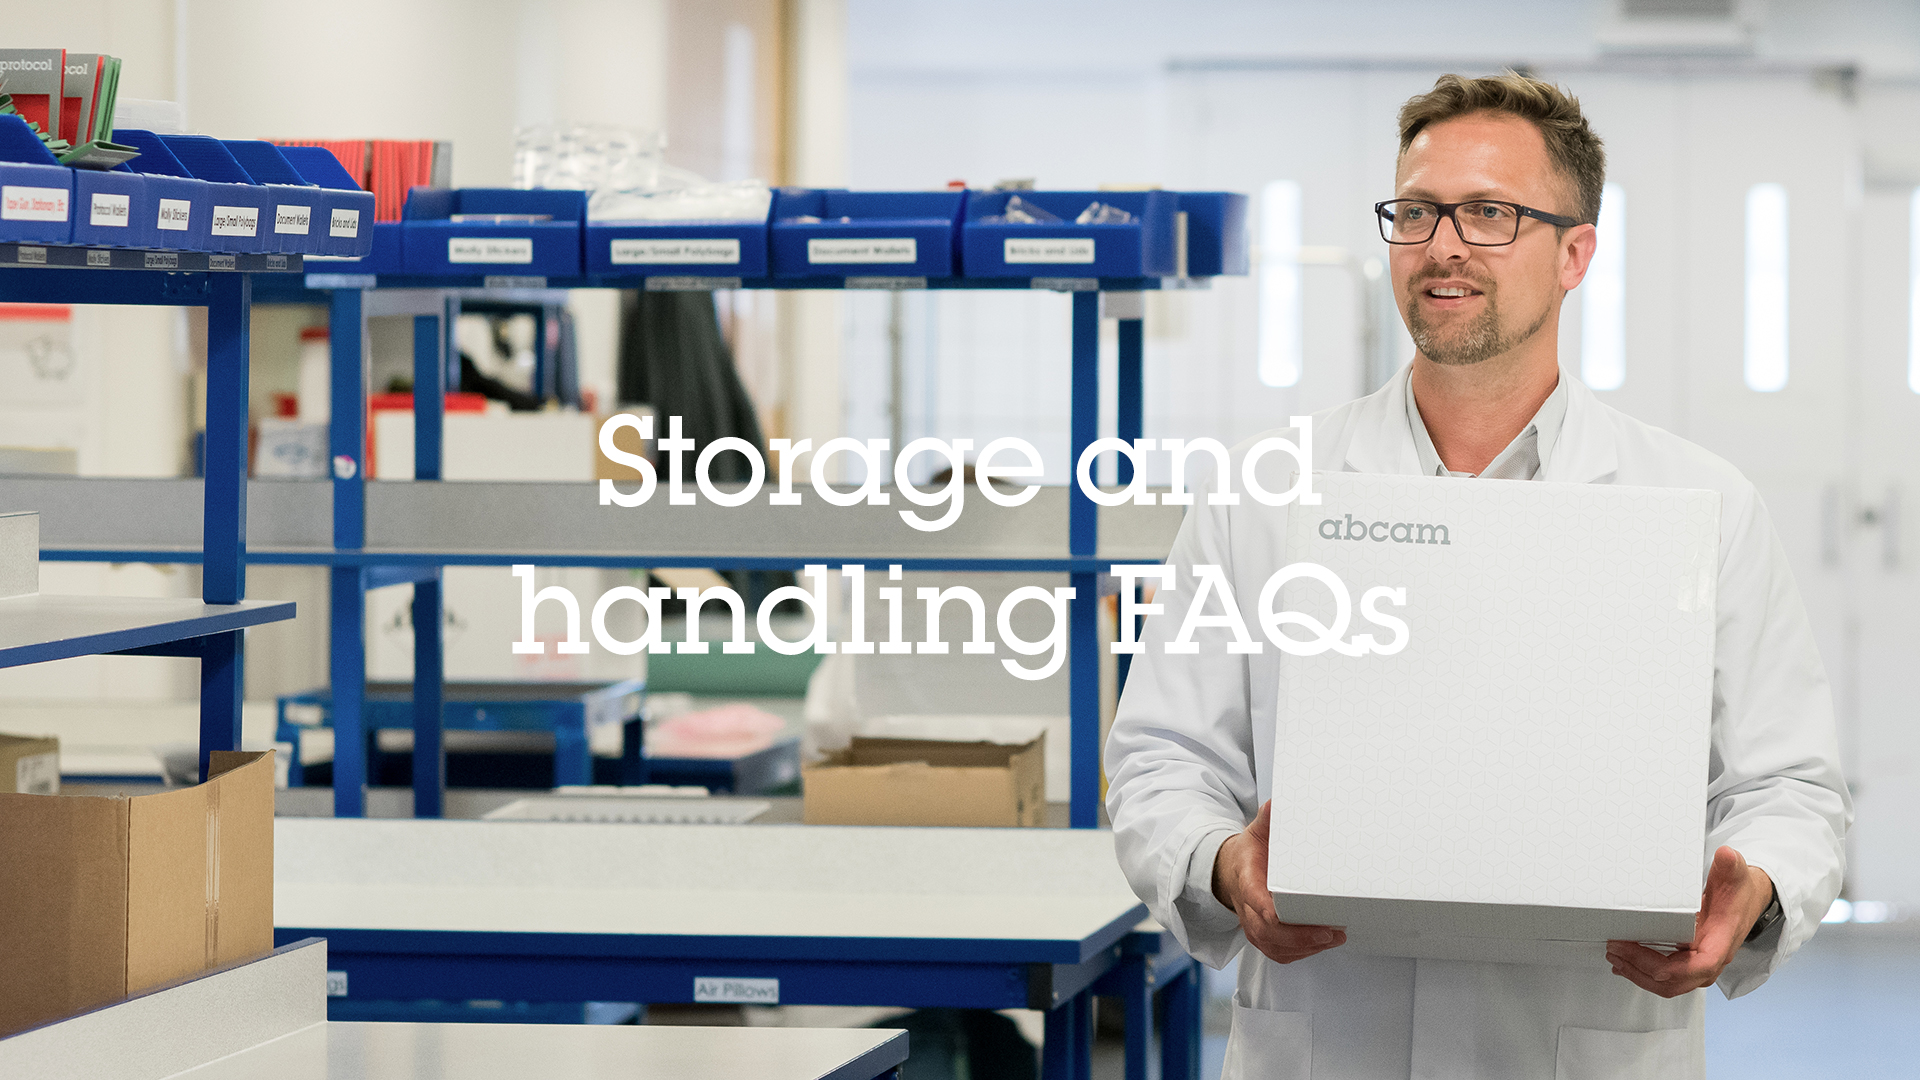 Part 2 - Storage and Handling FAQs